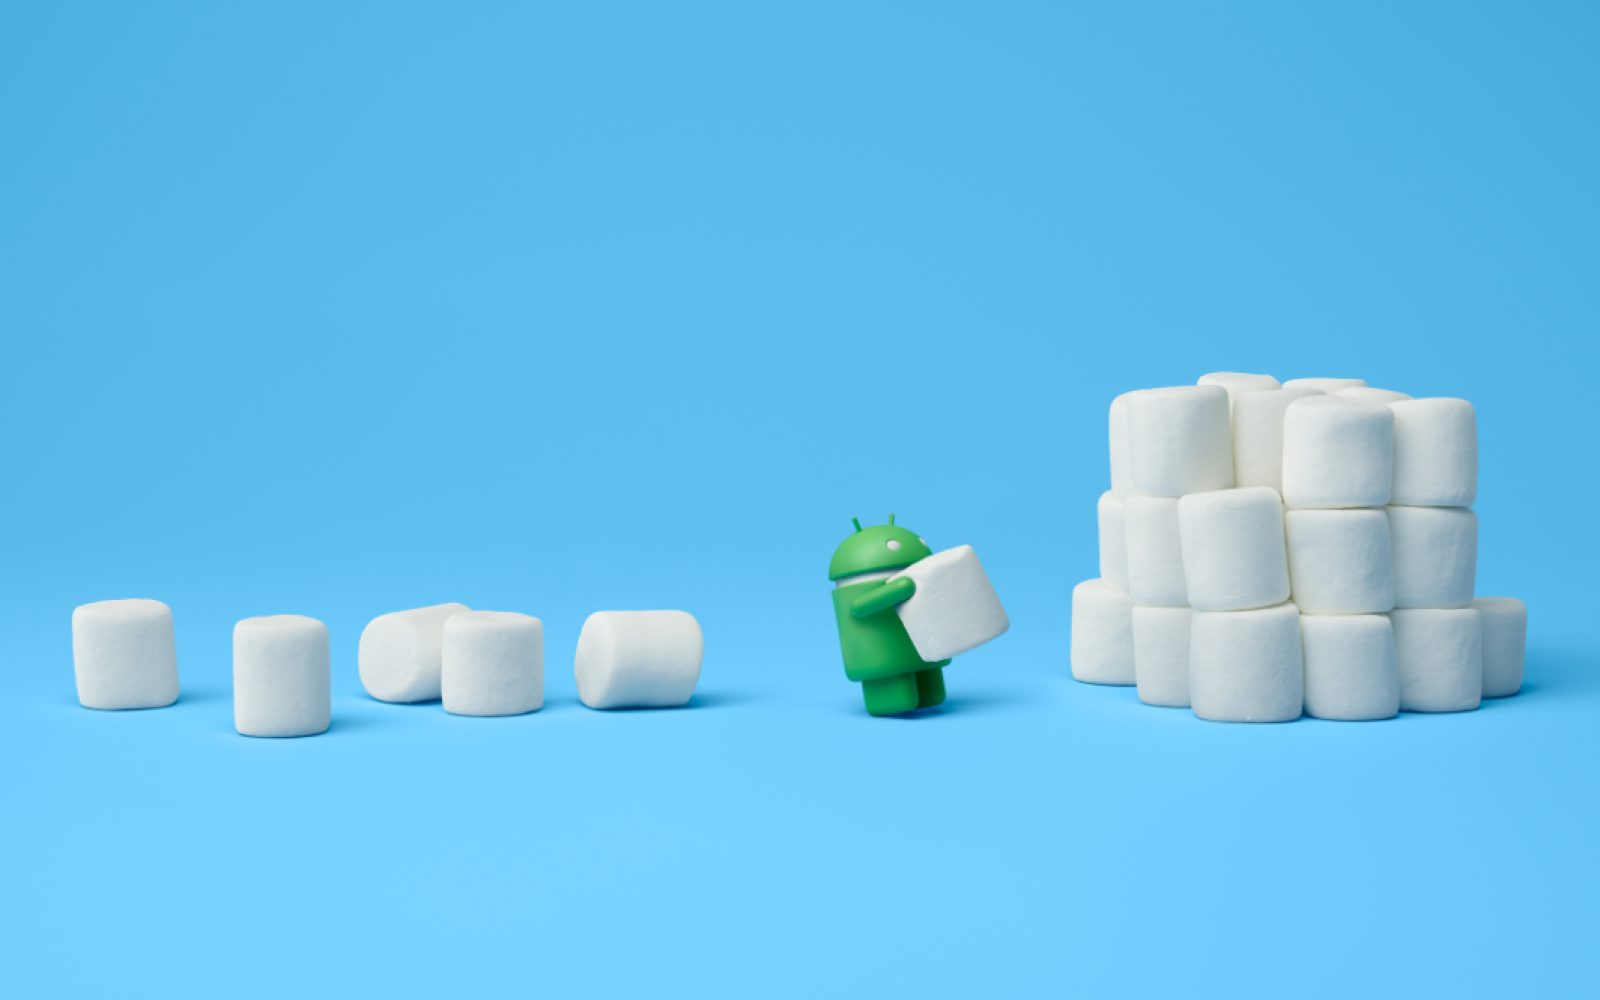 Linux kernel root vulnerability affects many Android devices